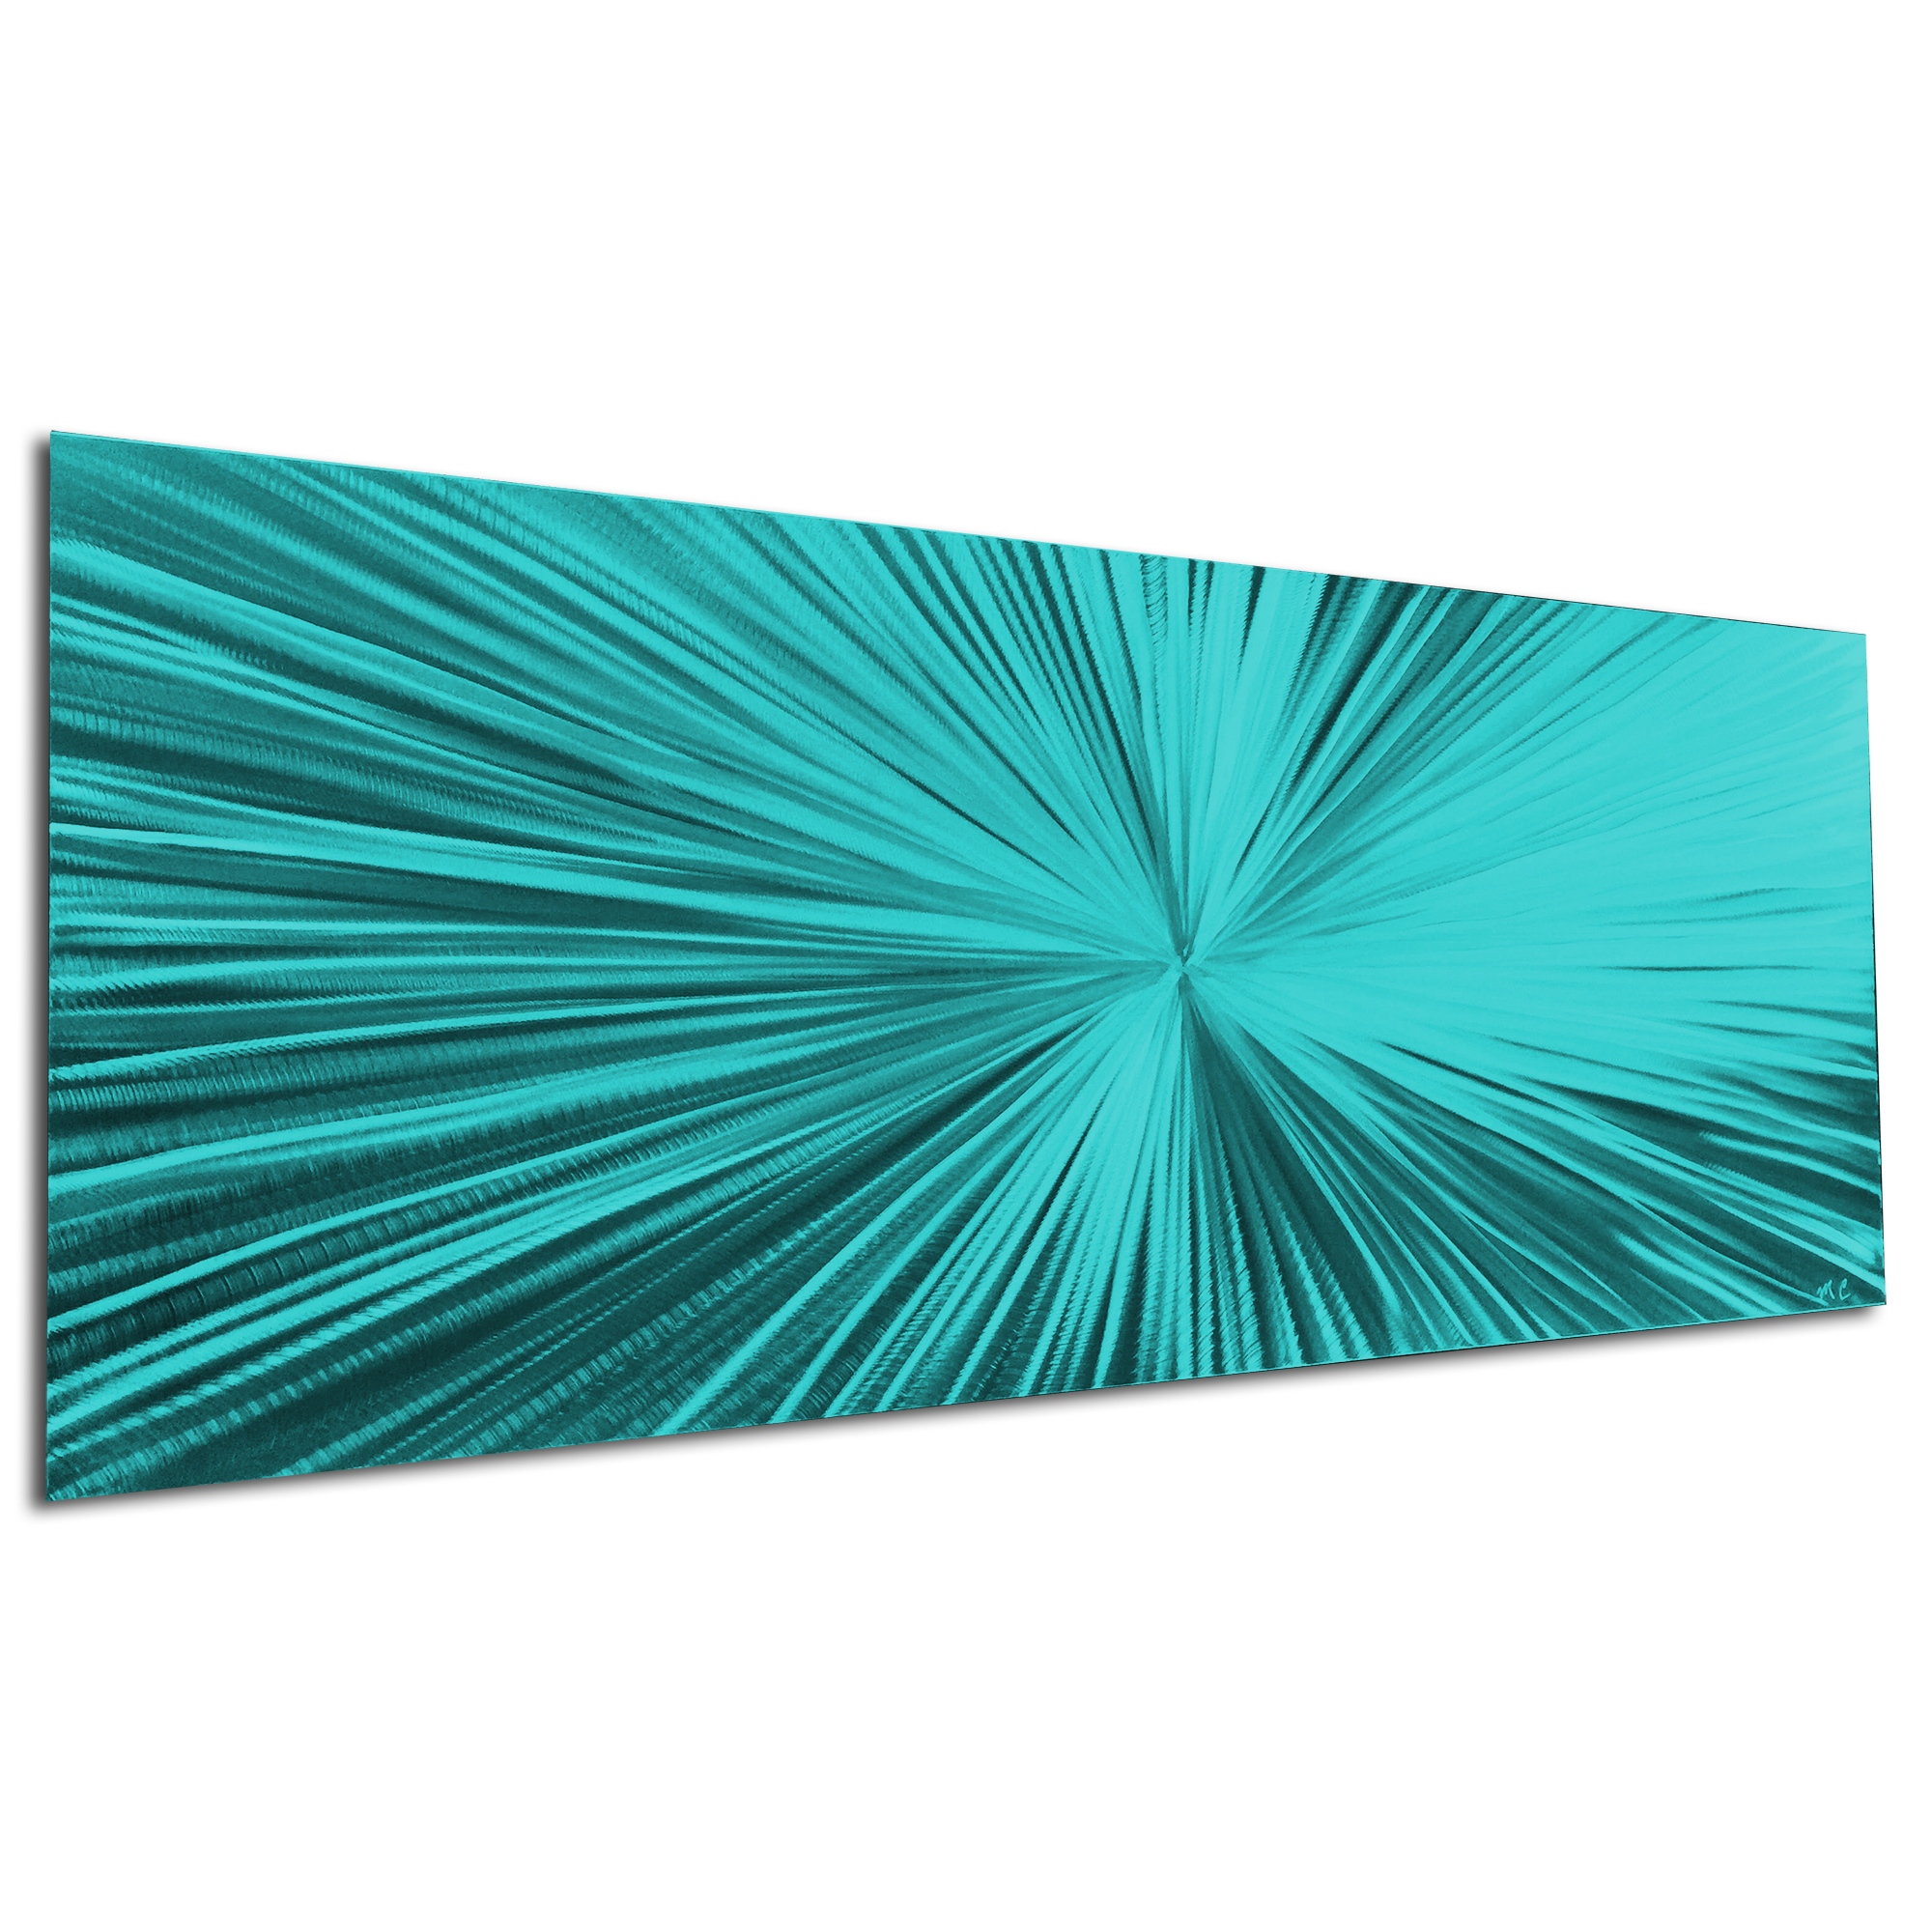 Starburst Teal by Helena Martin - Original Abstract Art on Ground and Painted Metal - Image 3